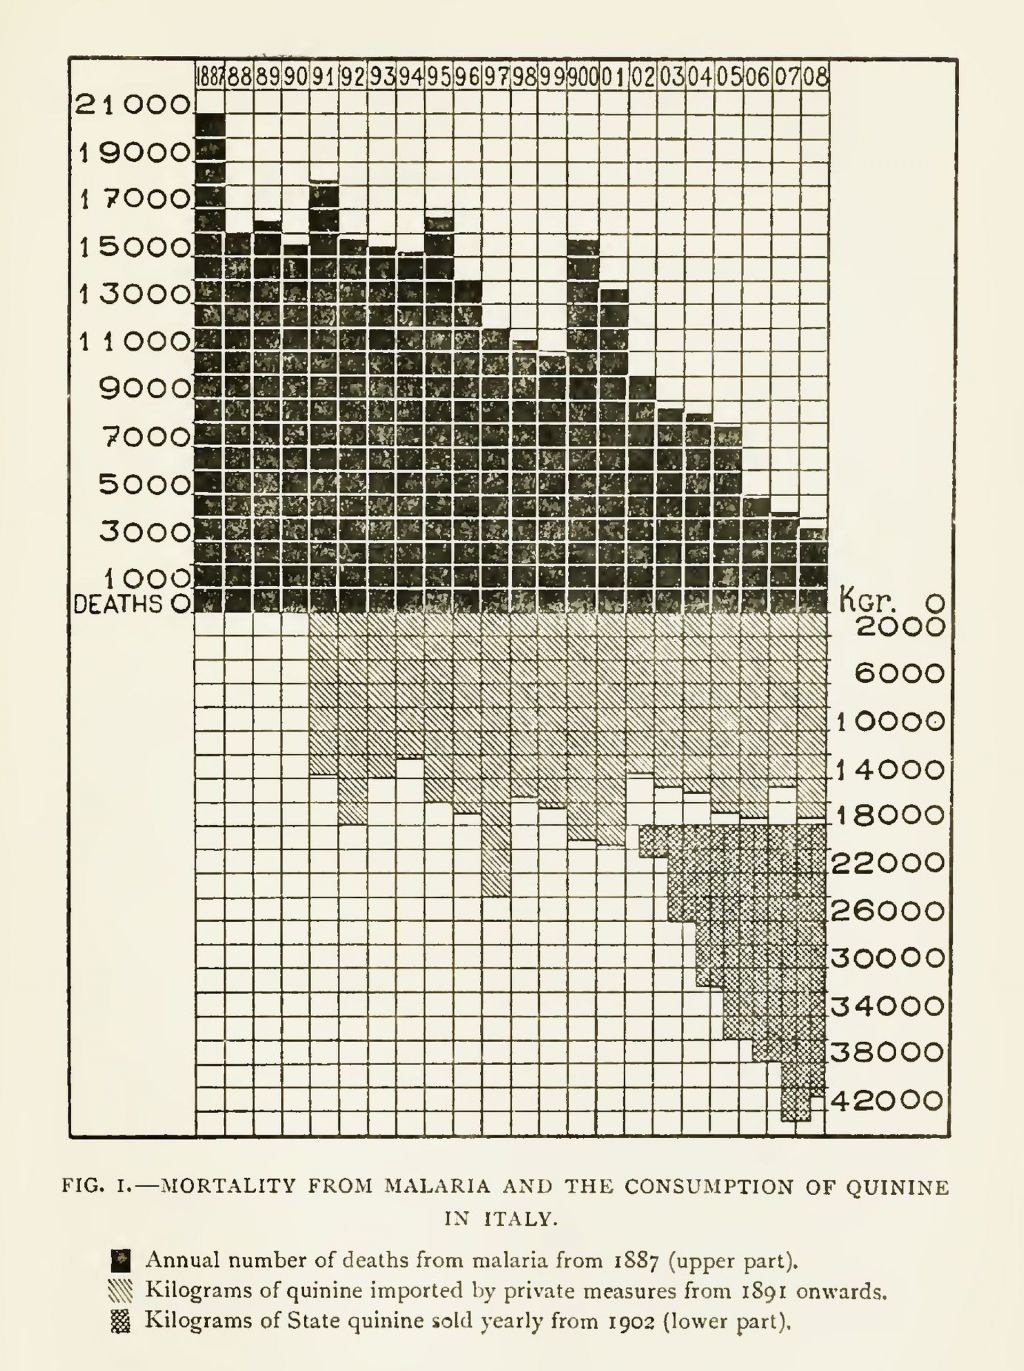 Angelo Celli, malariologist. A graph showing the decline of malaria deaths in Italy in relation to the growing use of quinine, in Ronald Ross, The Prevention of Malaria (New York: 1910), 451